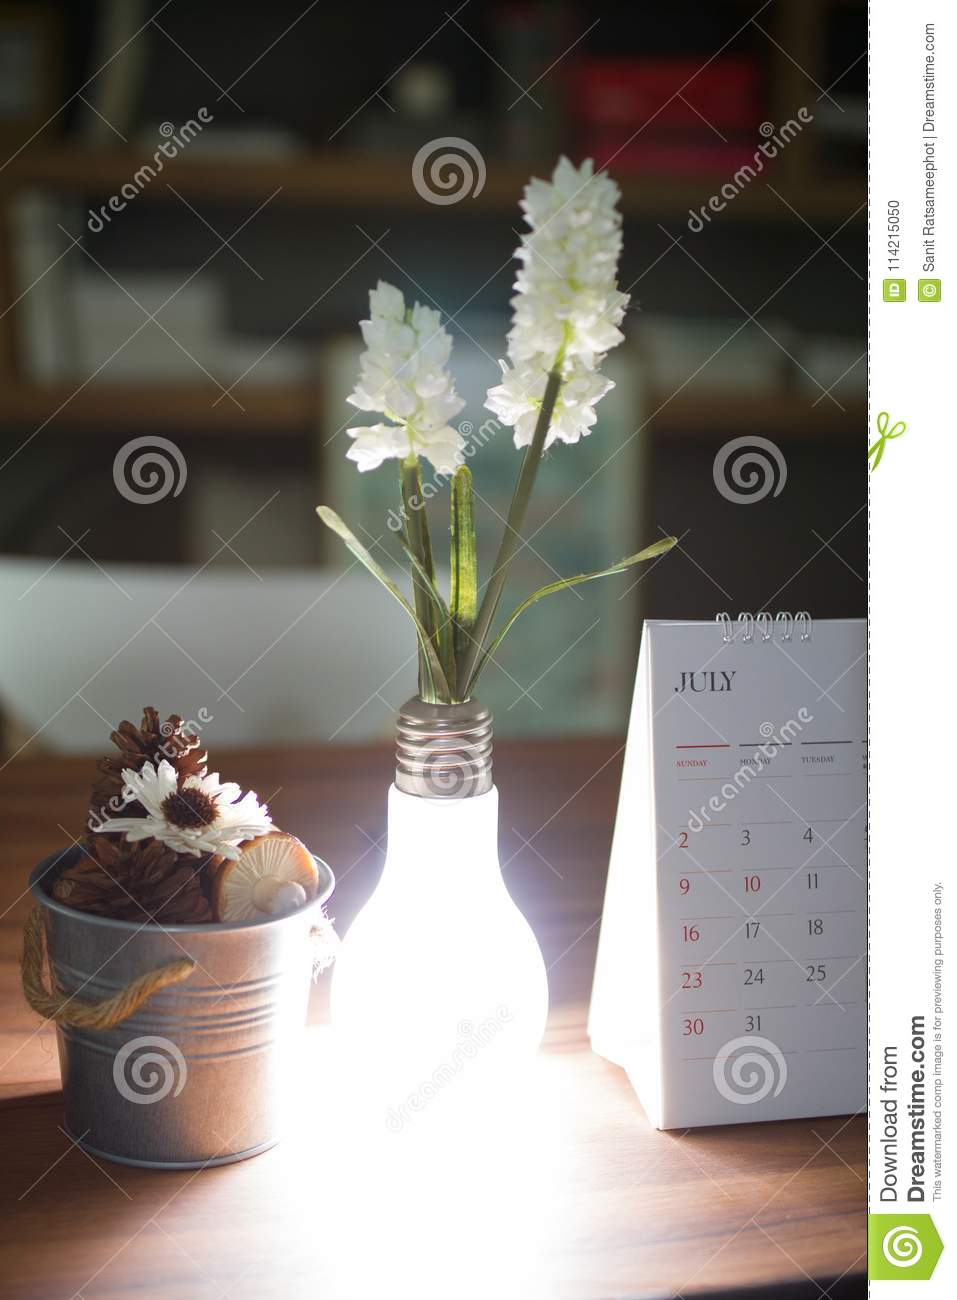 Flower vase like light bulbs. & Flower Vase Like Light Bulbs. Stock Photo - Image of design decor ...